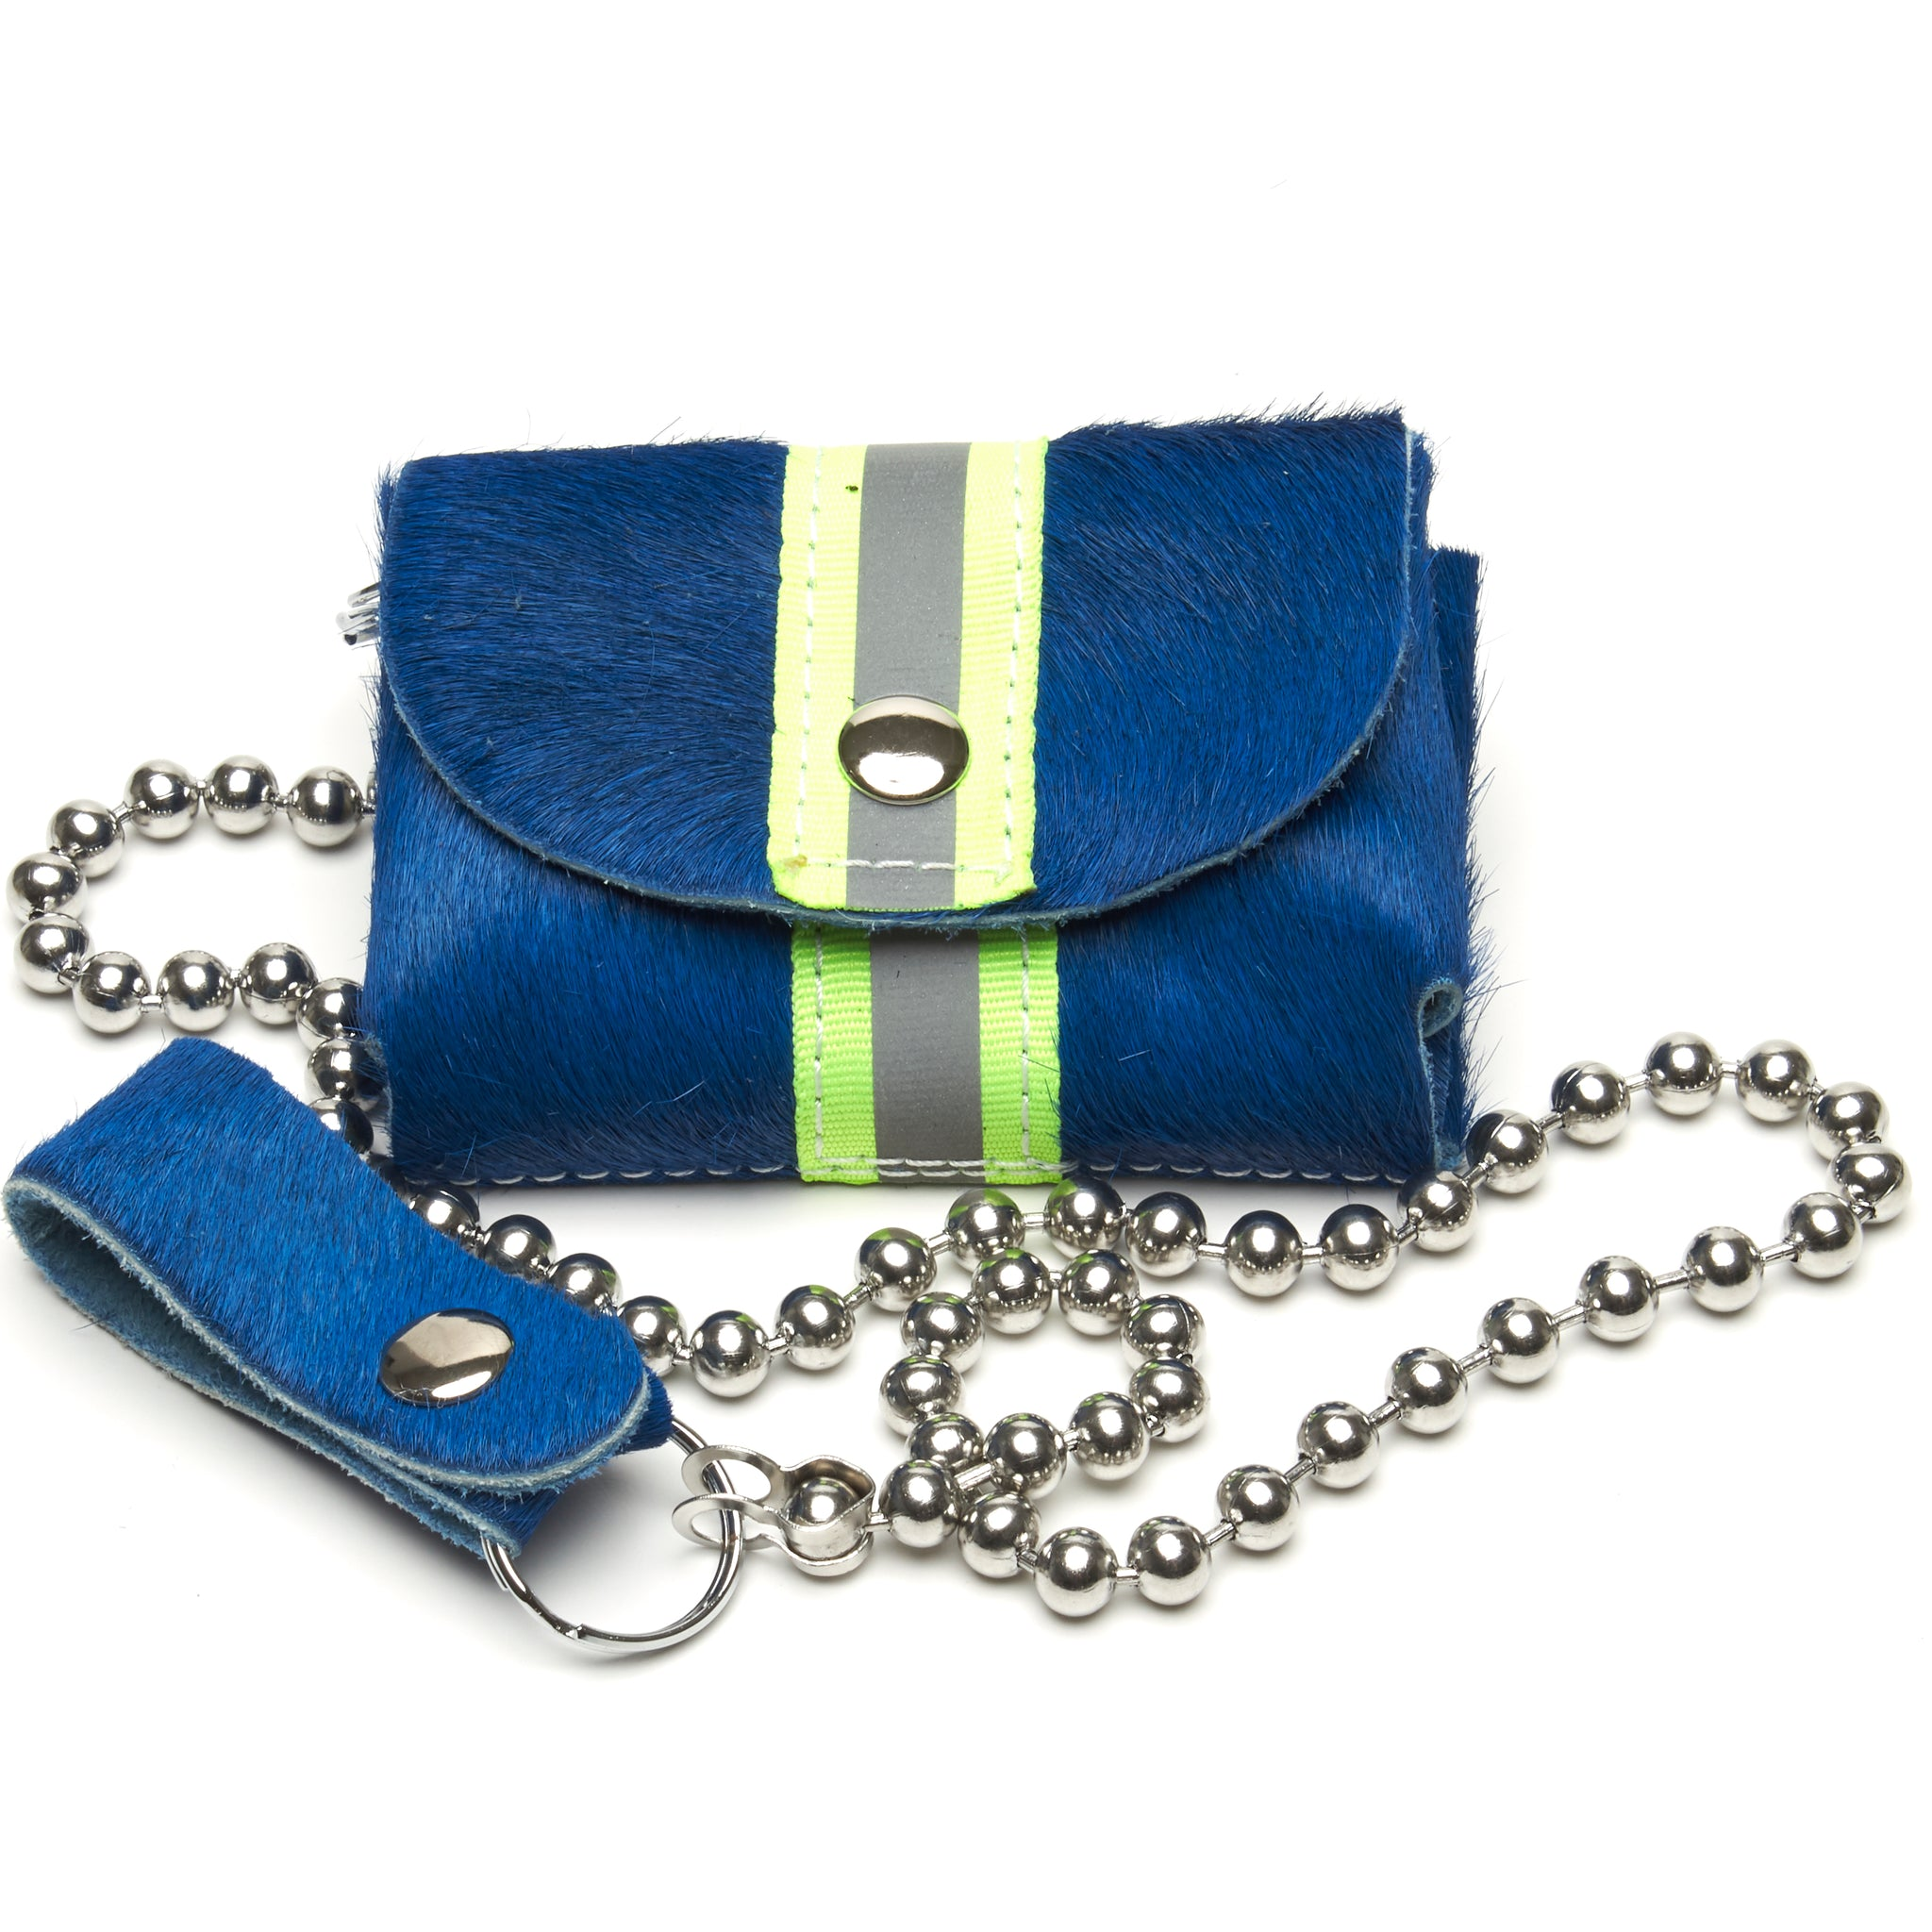 The Essentials wallet cobalt blue hair-on cowhide with neon yellow reflective band